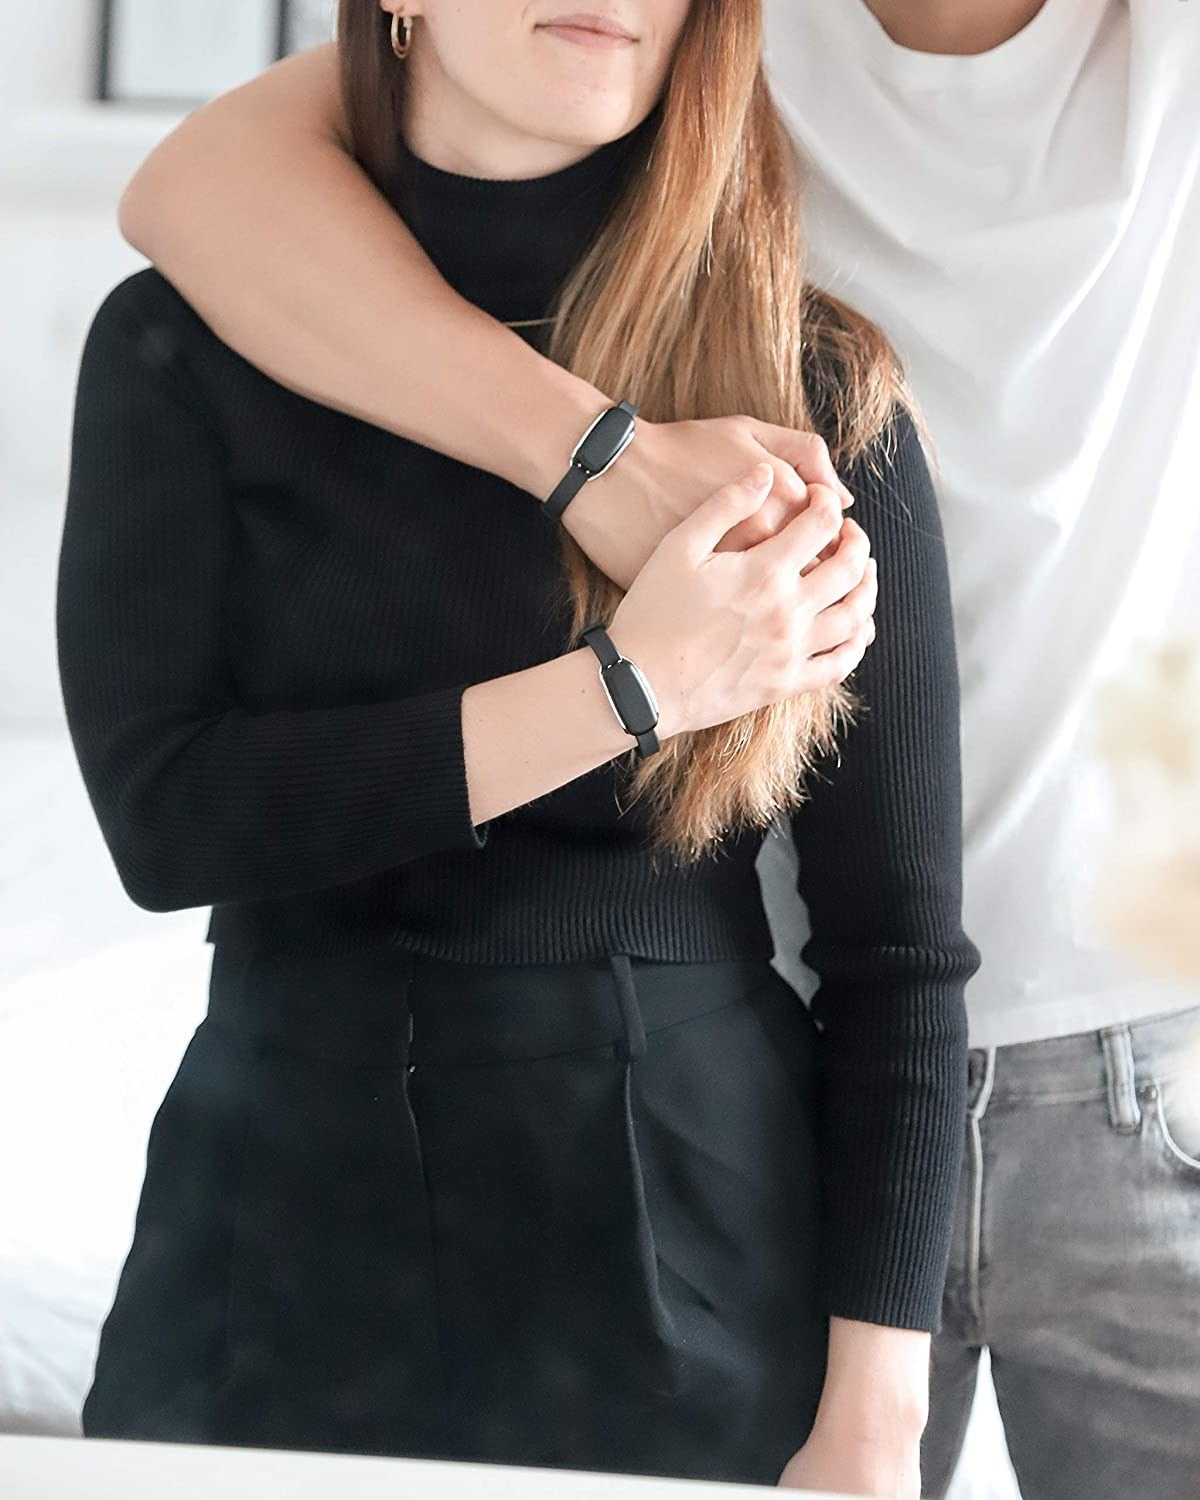 Two models holding hands and wearing the bracelets